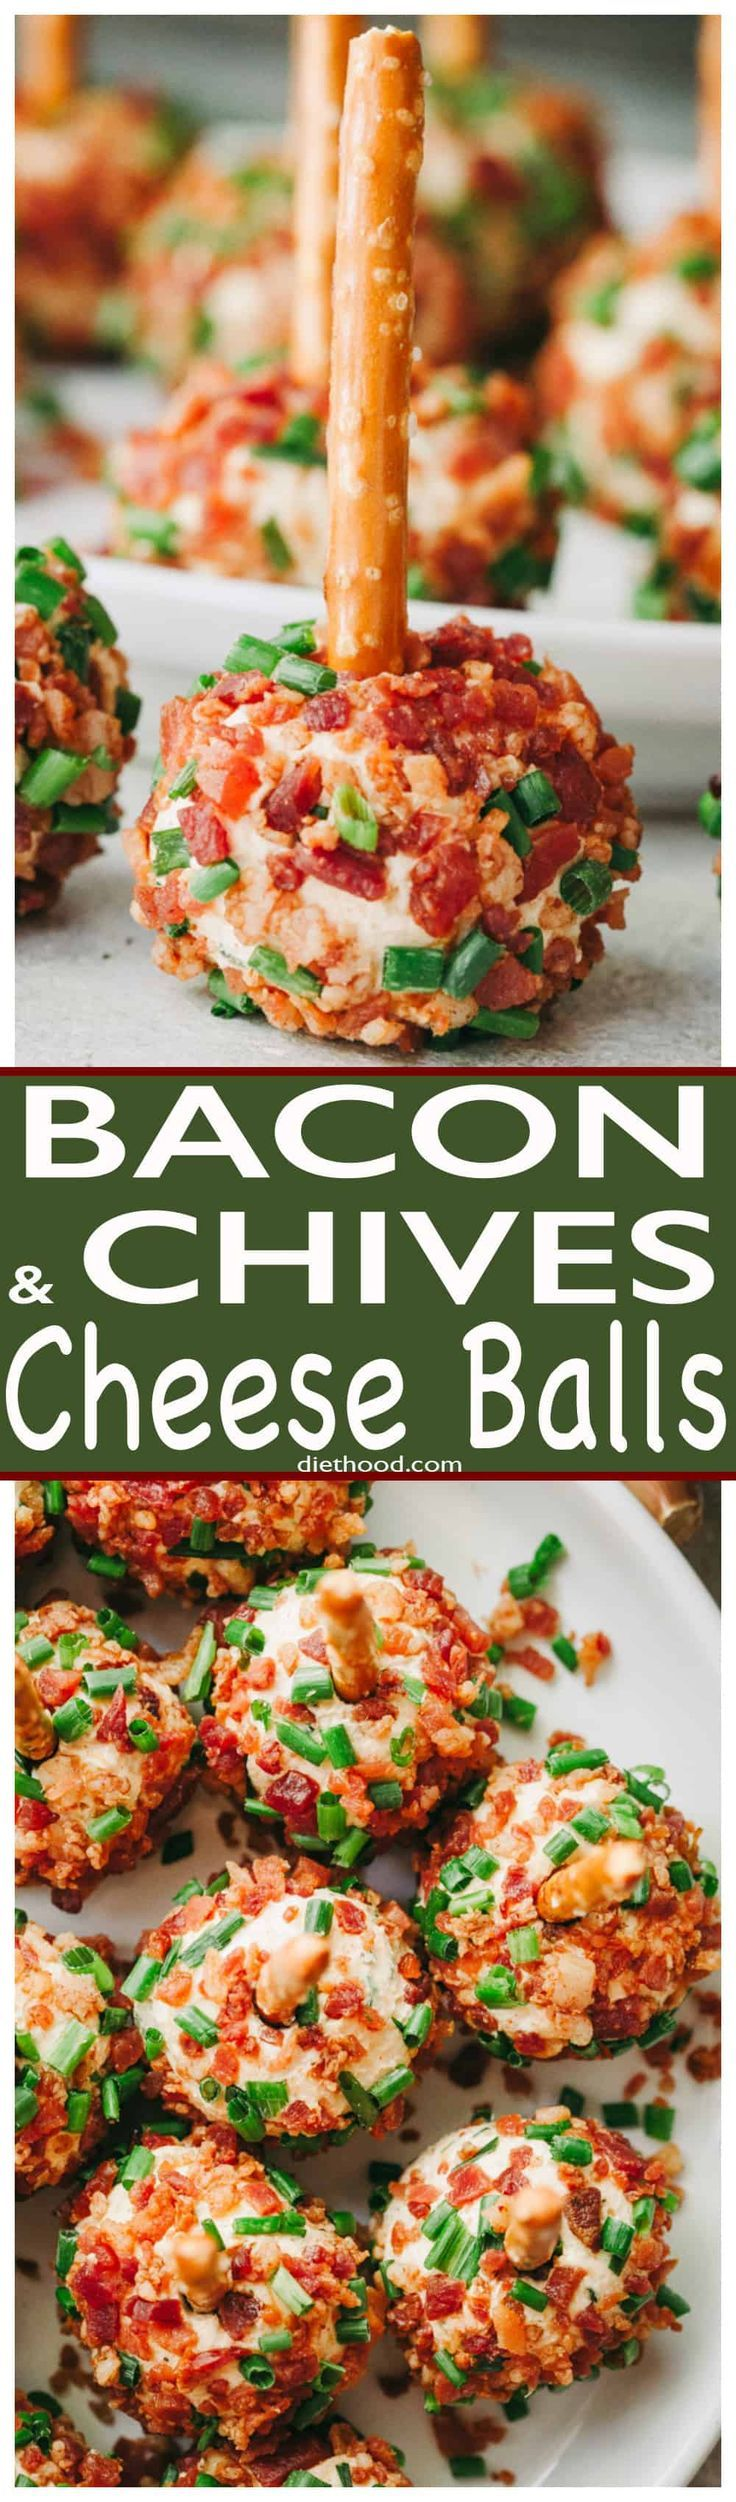 Bacon and Chives Cheese Balls Recipe - Easy, cheesy and bacony bite-size appetizer ideal for your Holiday parties or even game days! #bacon #holidays #appetizers #cheese via @diethood